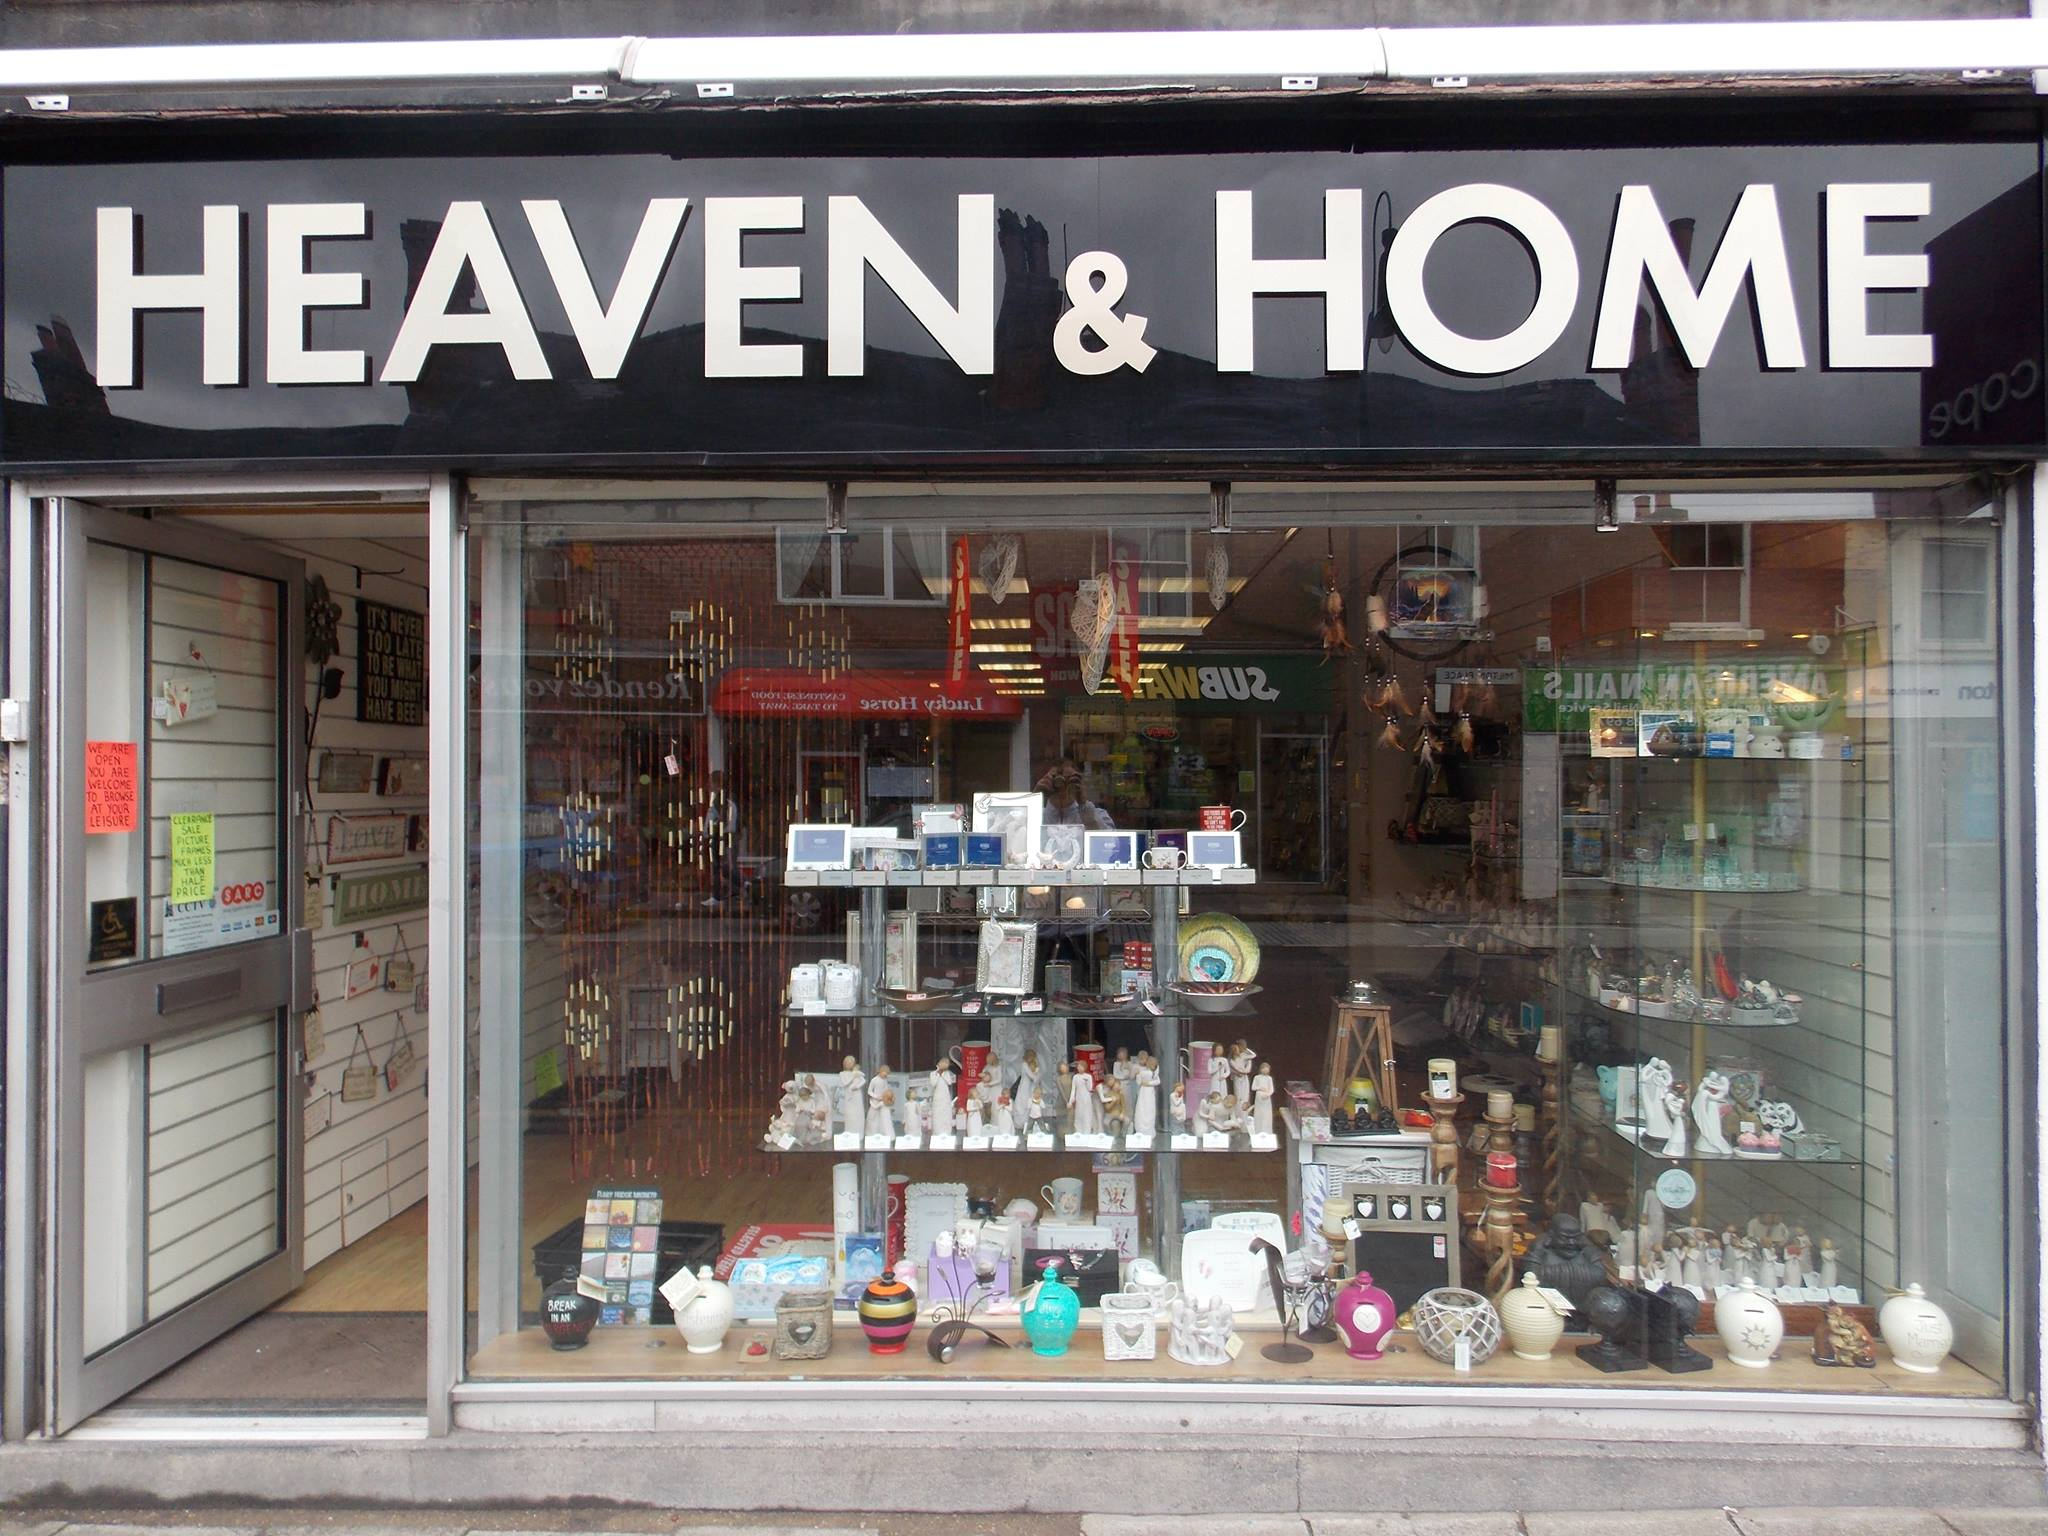 The photo shows the shop front of Heaven and Home